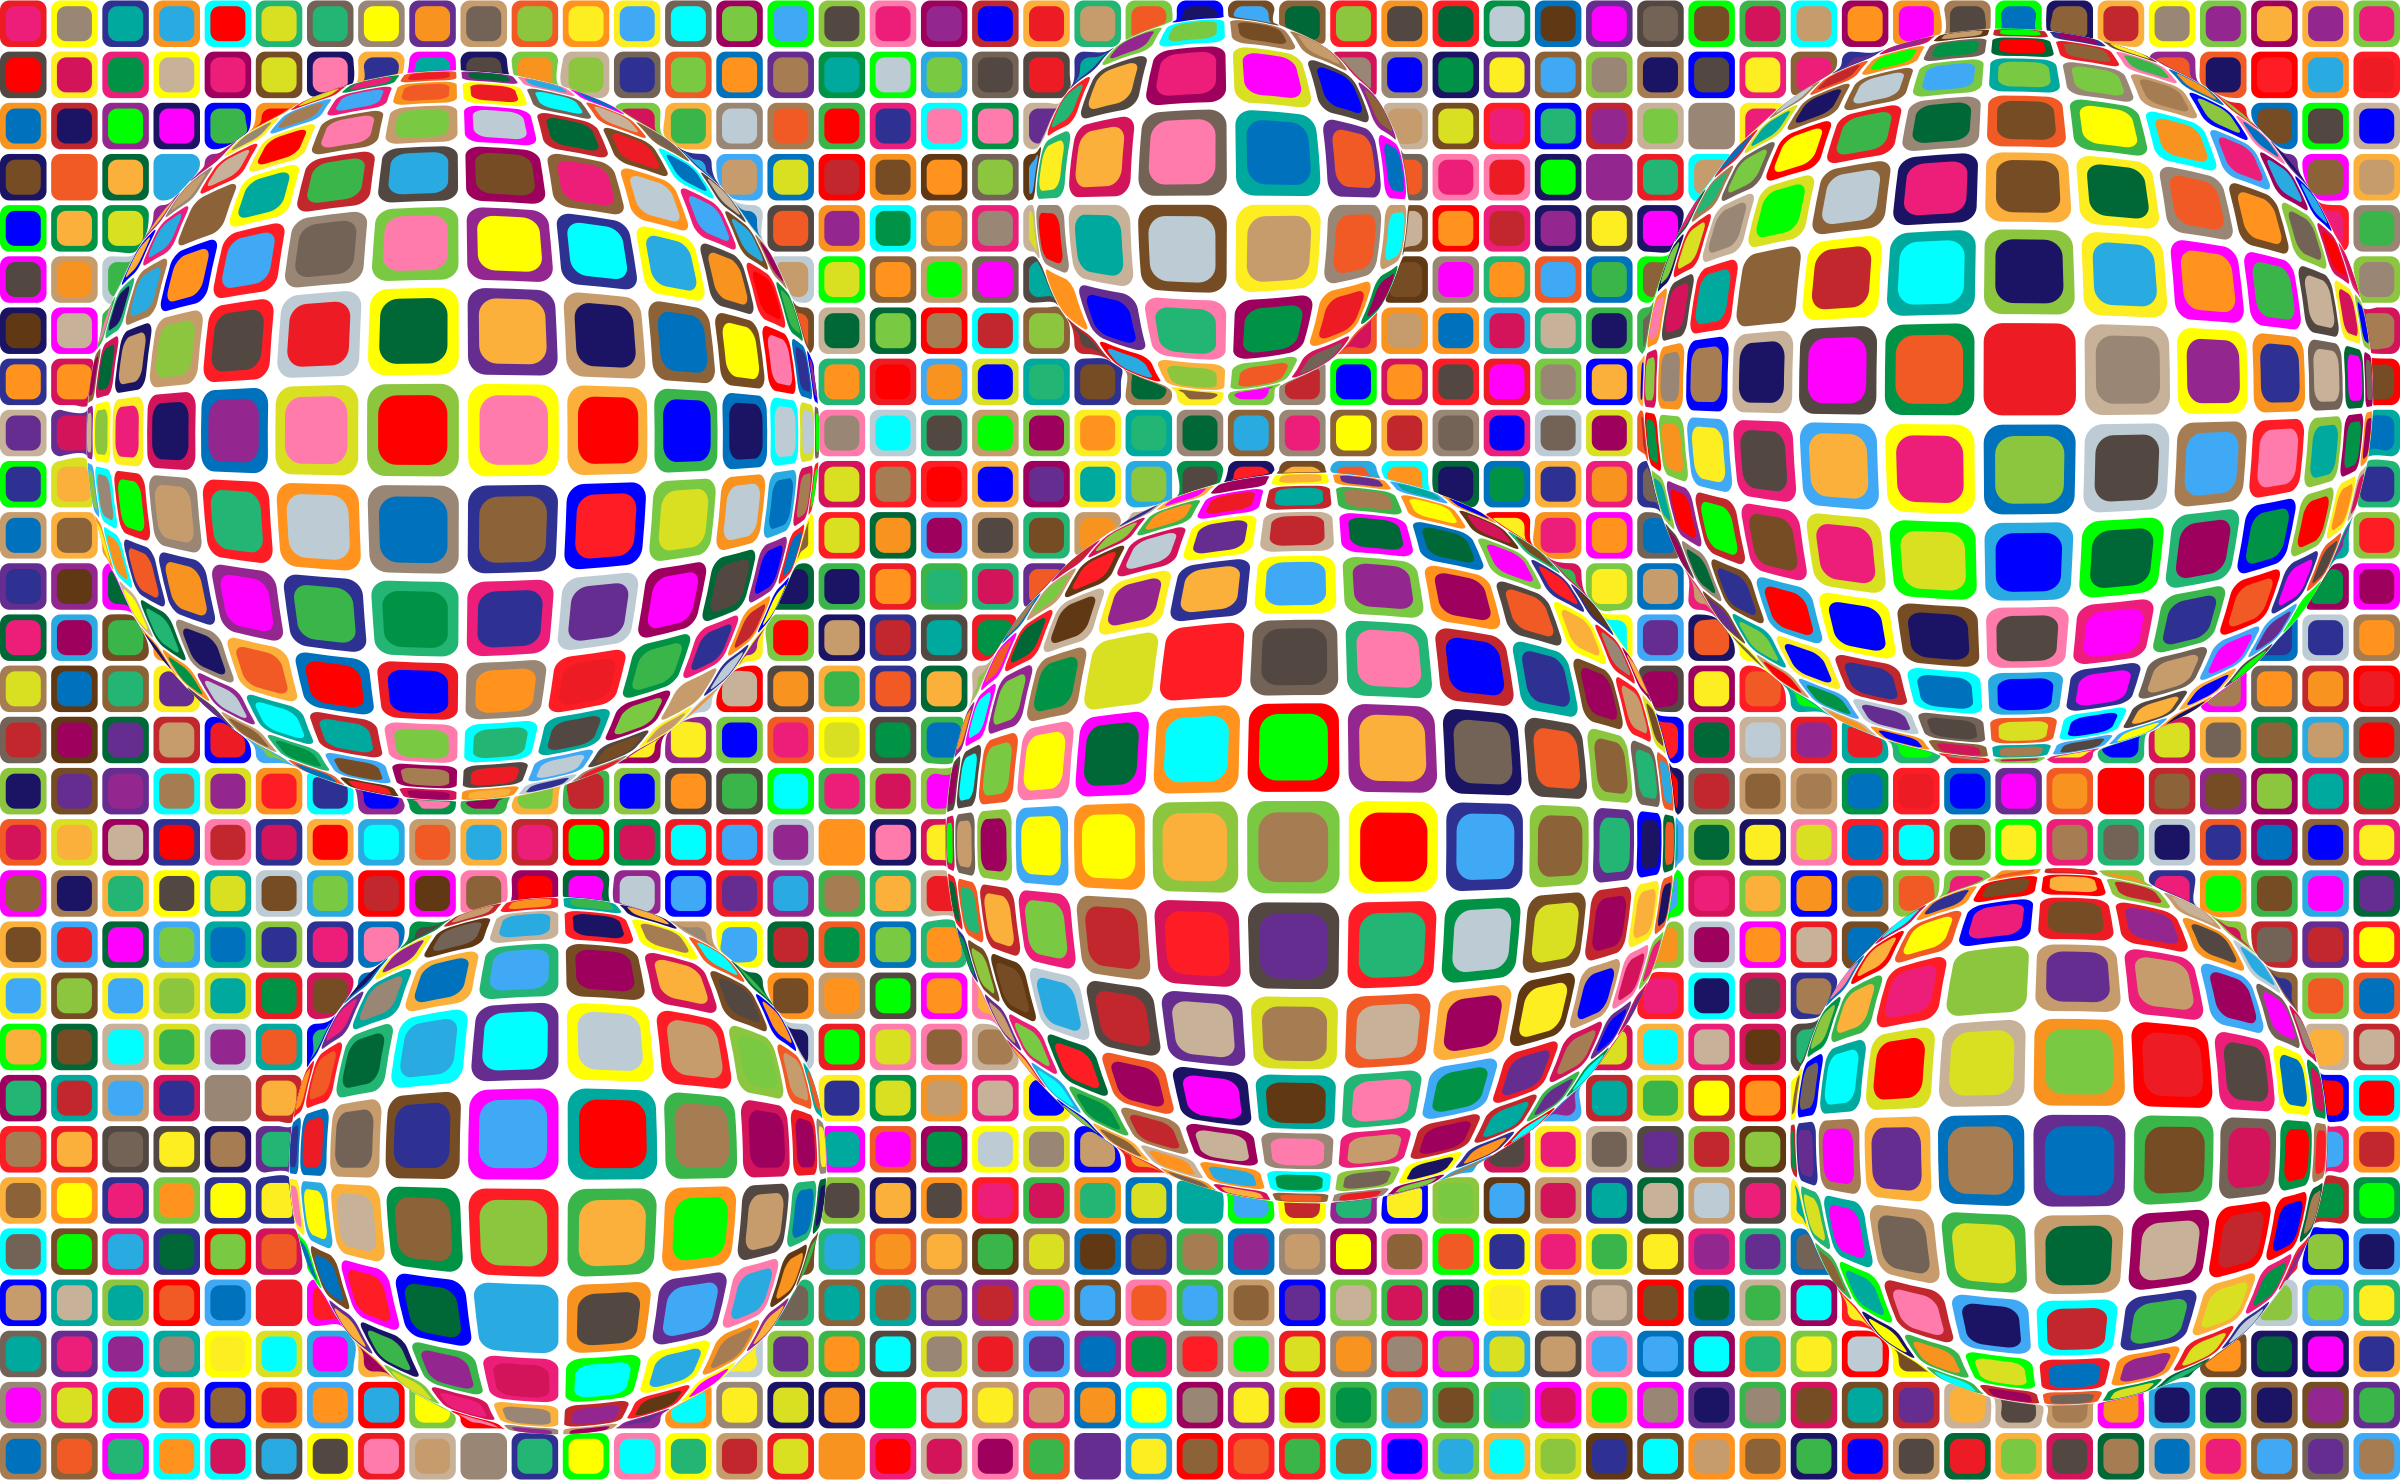 Colorful Squares Background Variation 2 by GDJ